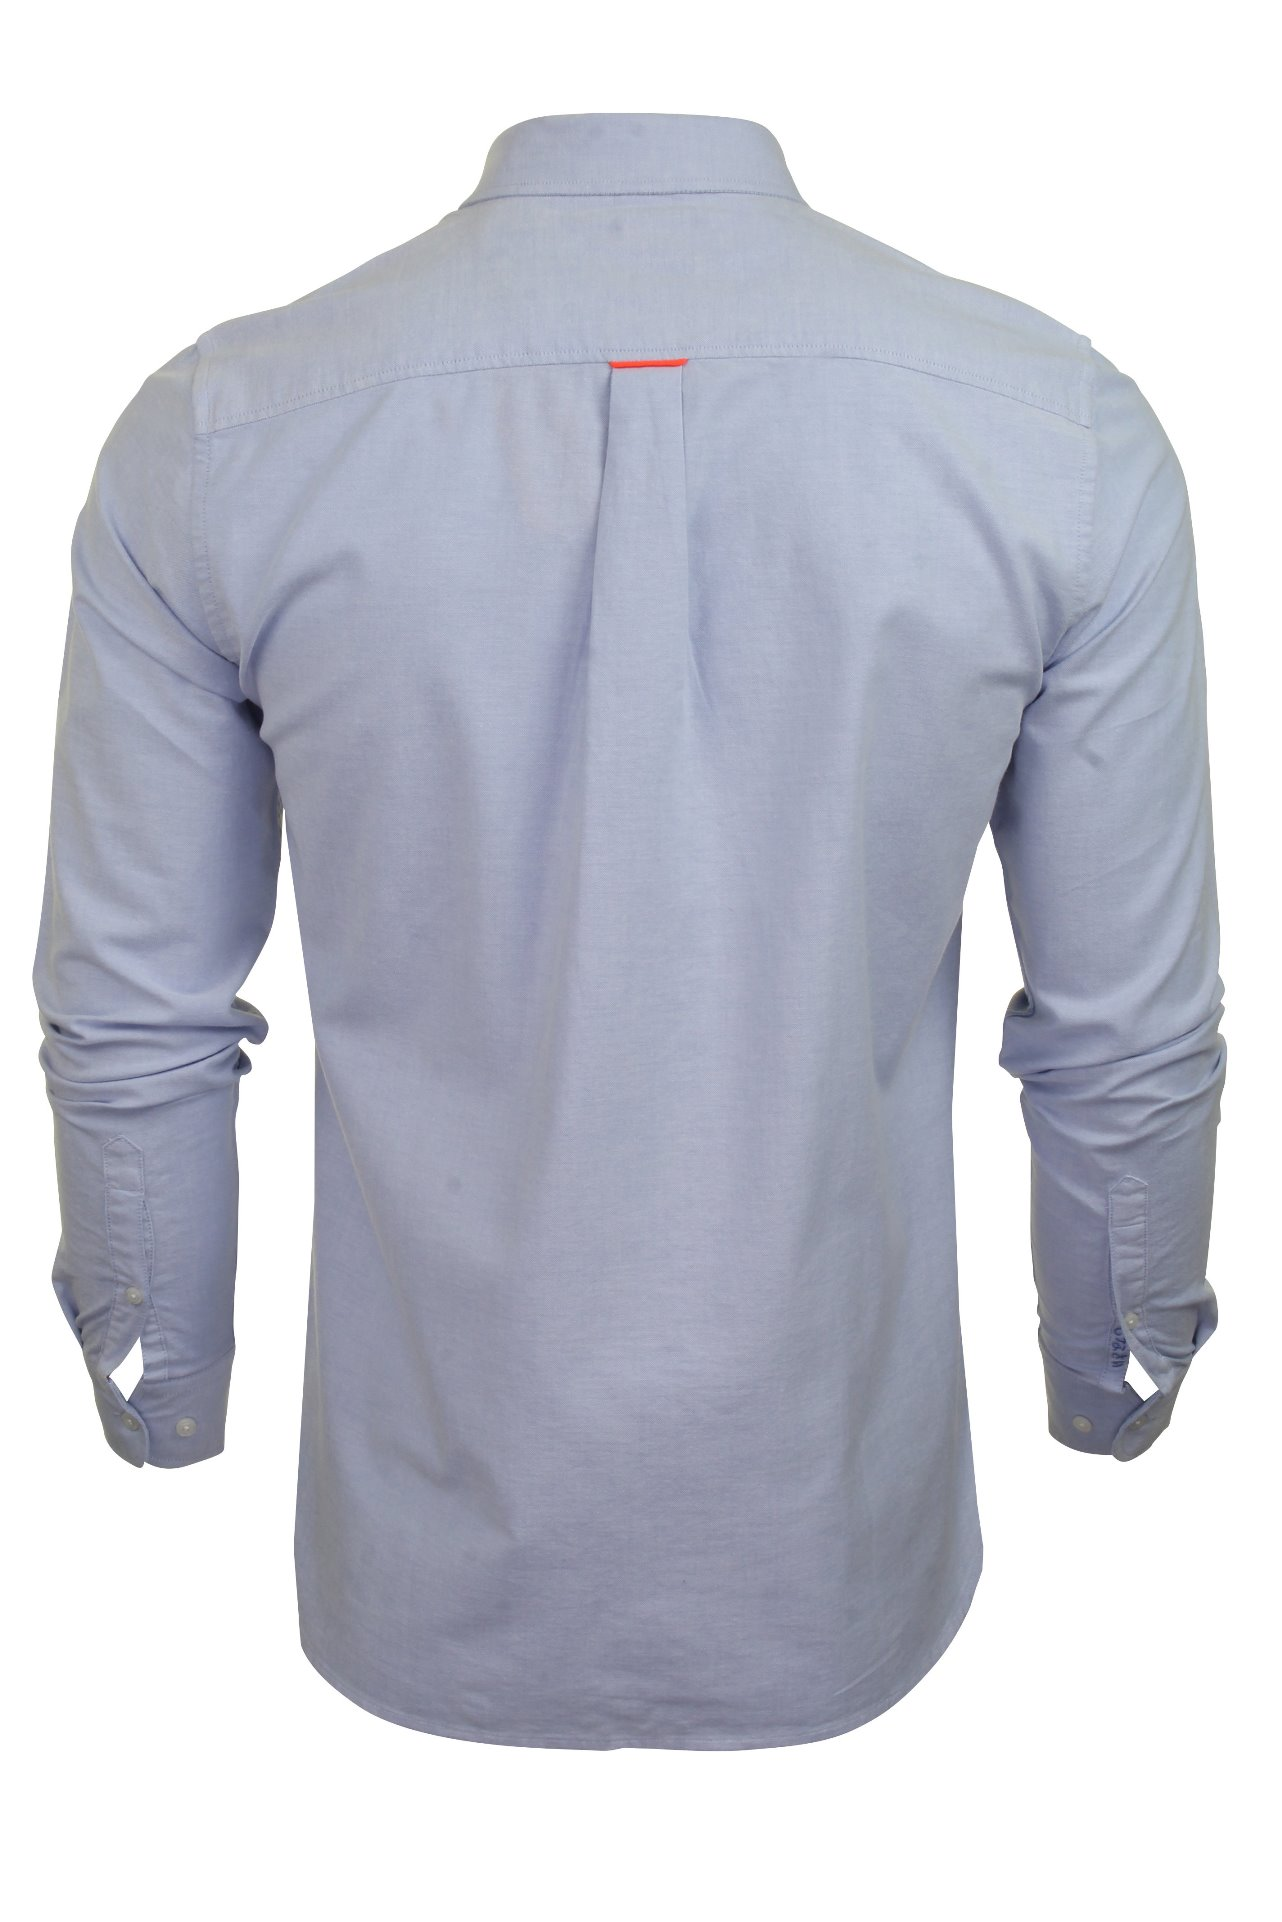 Superdry-Mens-Shirt-039-Classic-Oxford-University-039-Long-Sleeved thumbnail 5